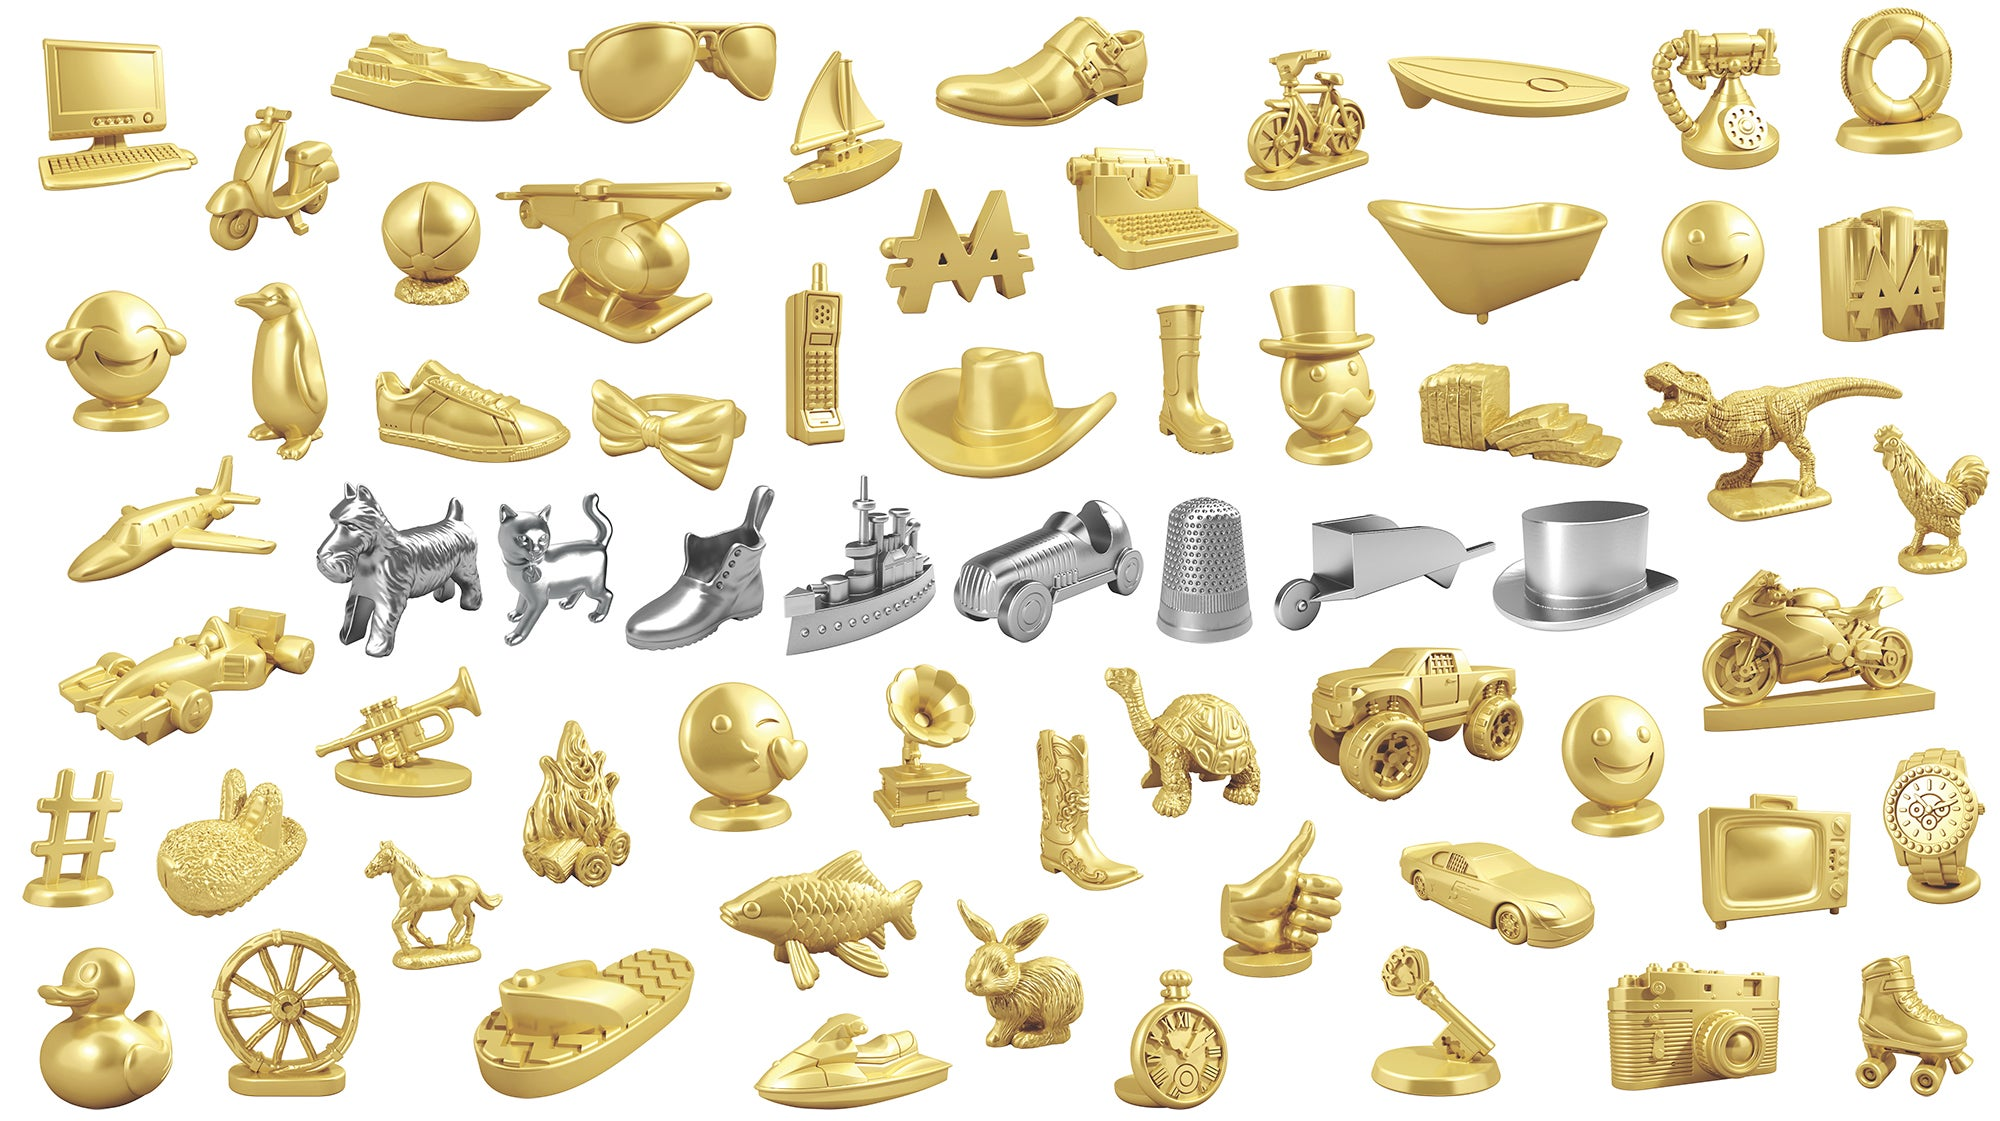 Monopoly Will Let The Internet Vote To Replace All Of The Board Game's Classic Tokens